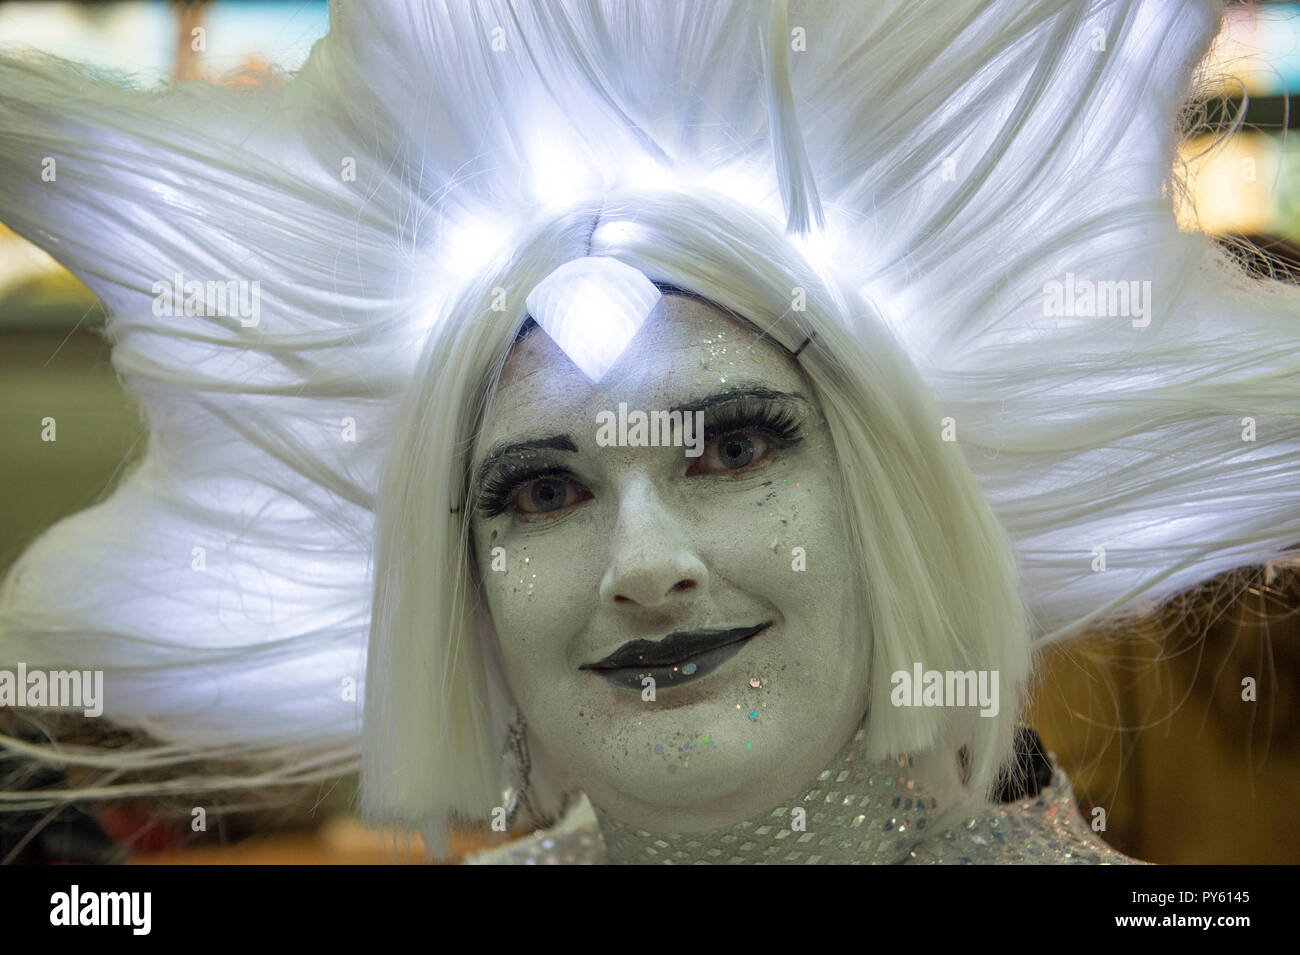 ExCel, London, UK. 26 October, 2018. Three day MCM Comic Con, comic book and cosplay event, opens at ExCel with many visitors in elaborate cosplay costume. Credit: Malcolm Park/Alamy Live News. - Stock Image